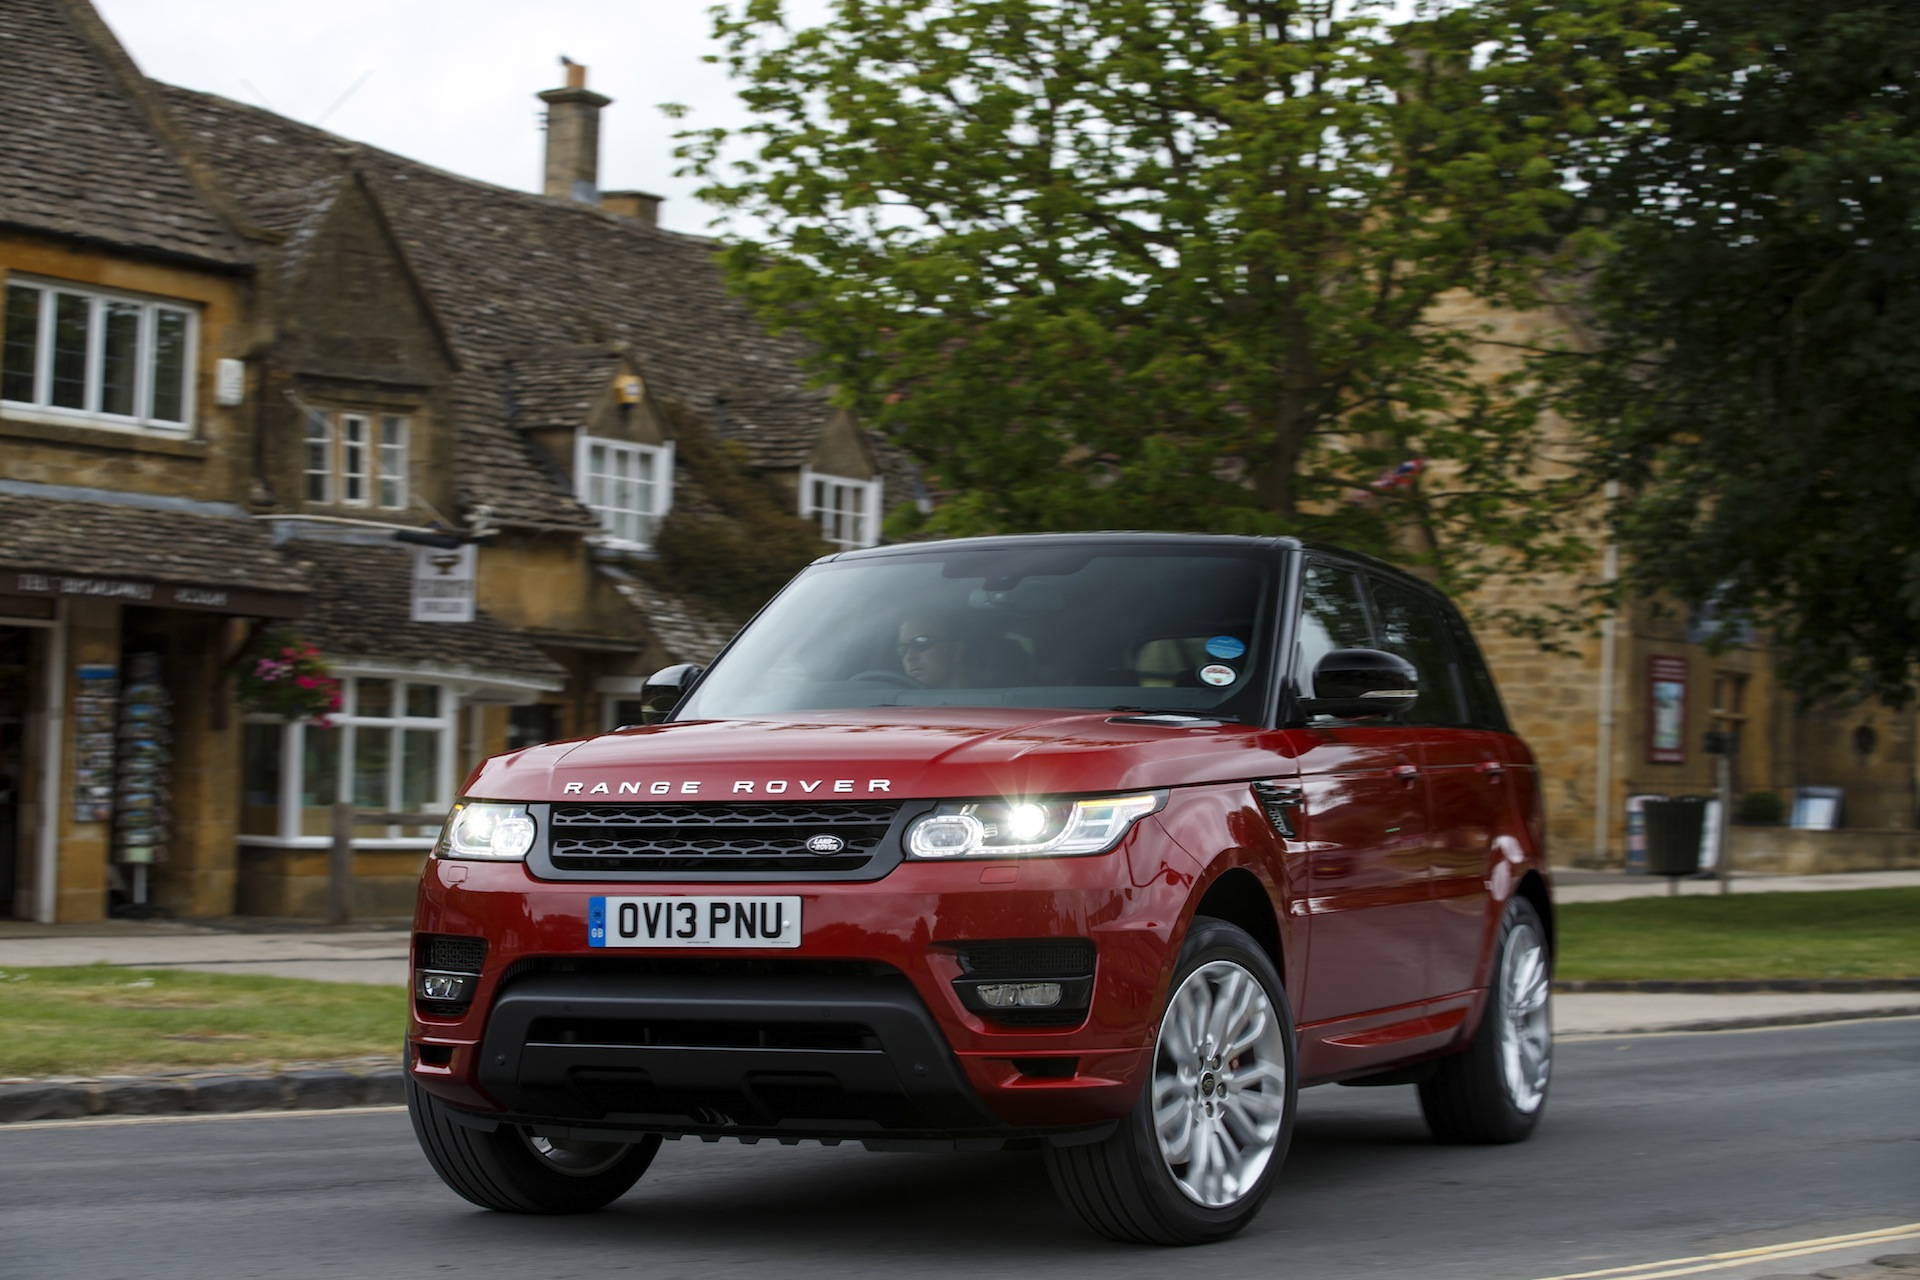 2014 land rover range rover sport priced from 63 495. Black Bedroom Furniture Sets. Home Design Ideas